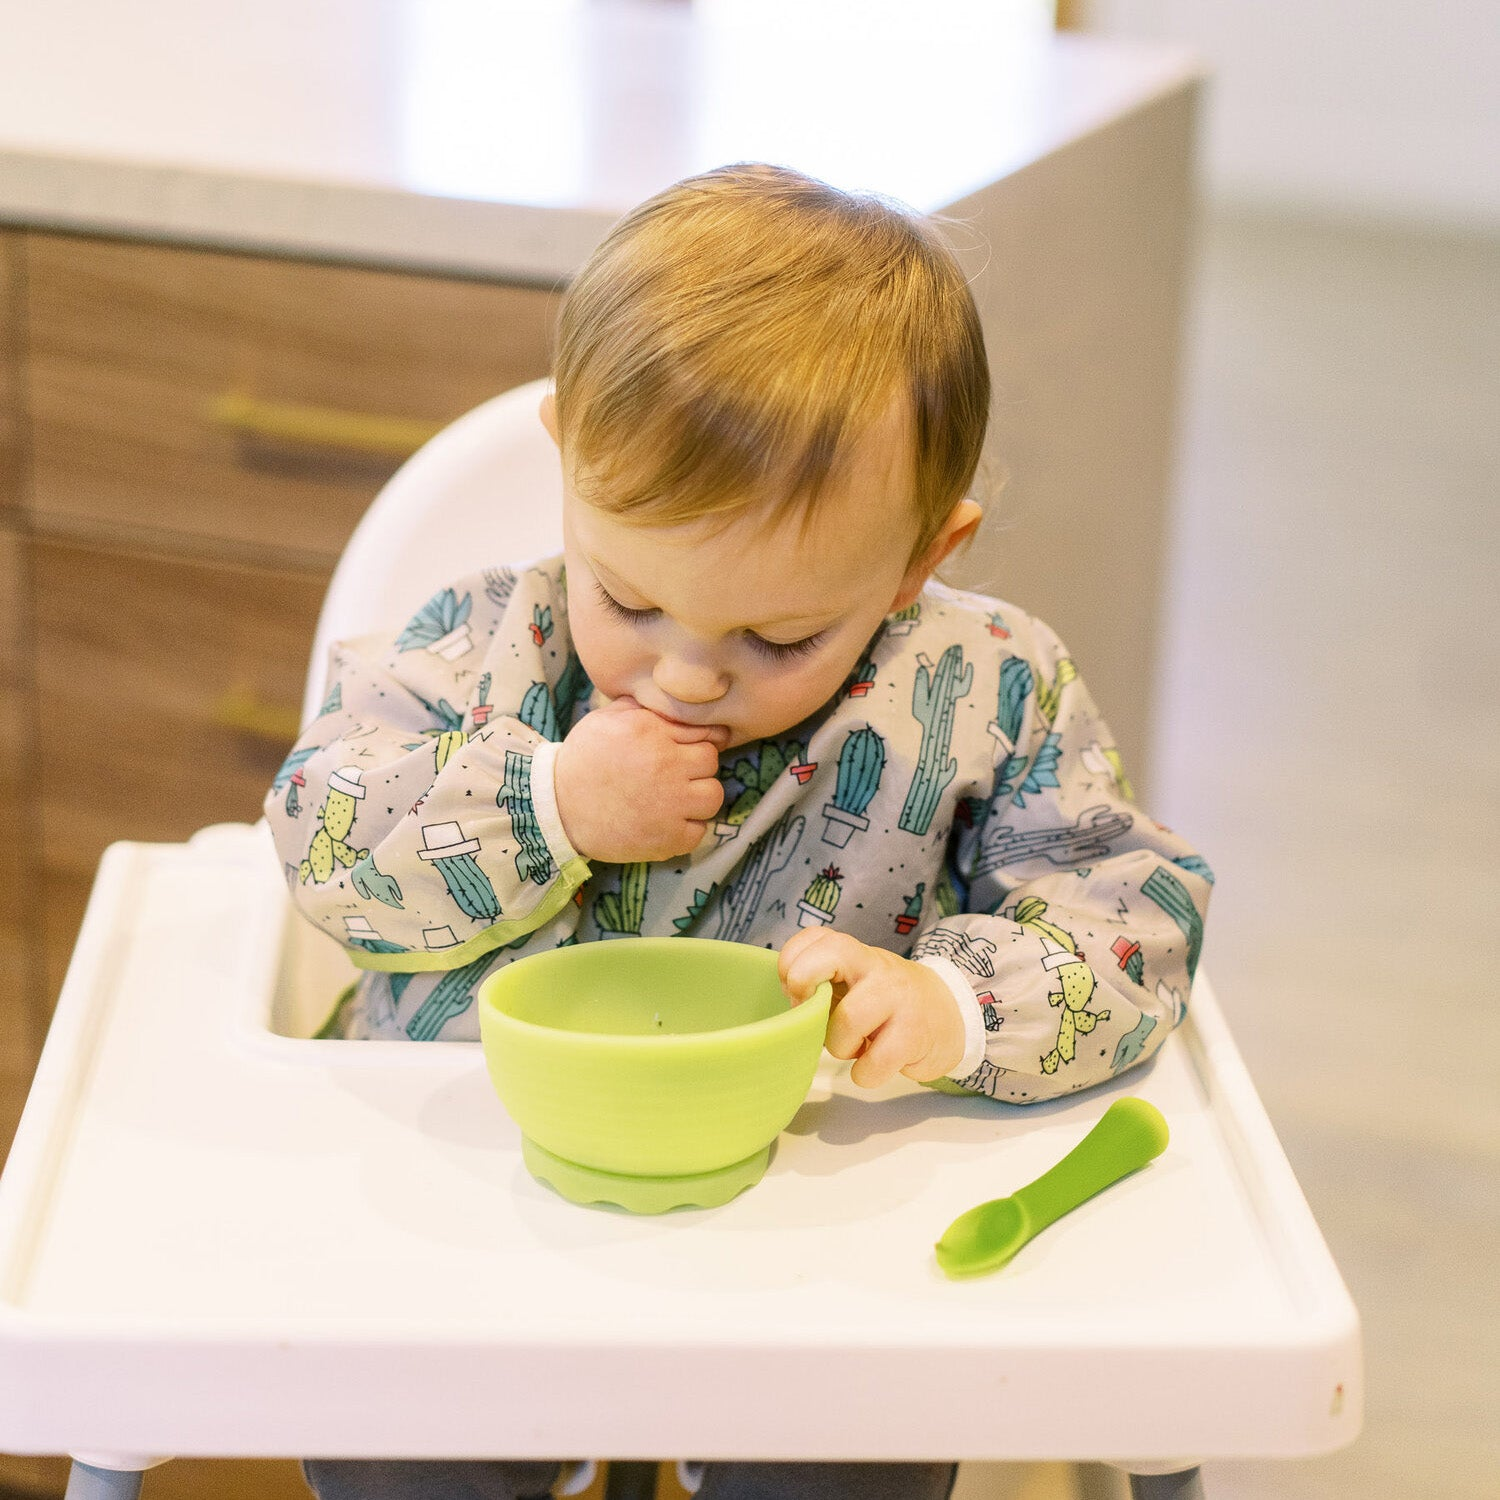 Olababy Spoons & Bowl Review